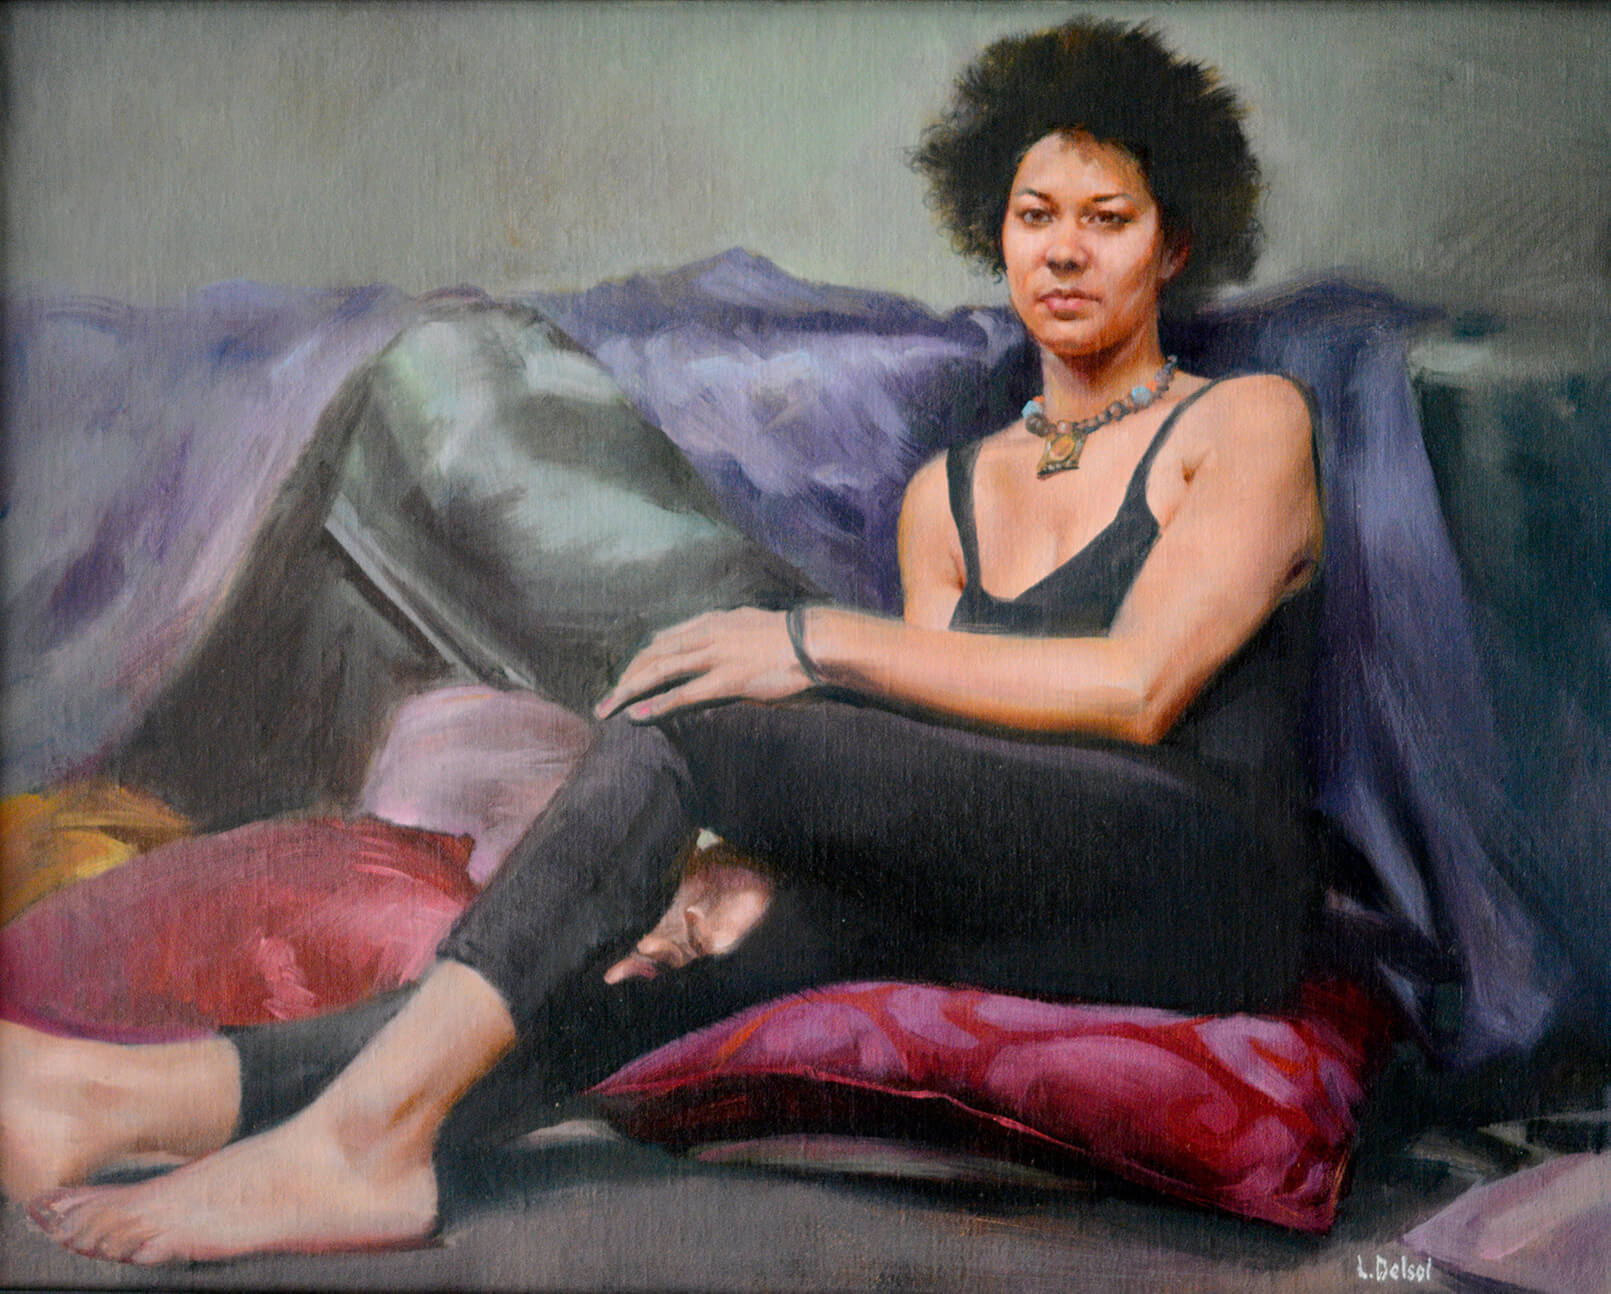 Realistic full figure oil portrait of a woman wearing black legging and sleeveless top sitting upon plum colored cushions gazing at us